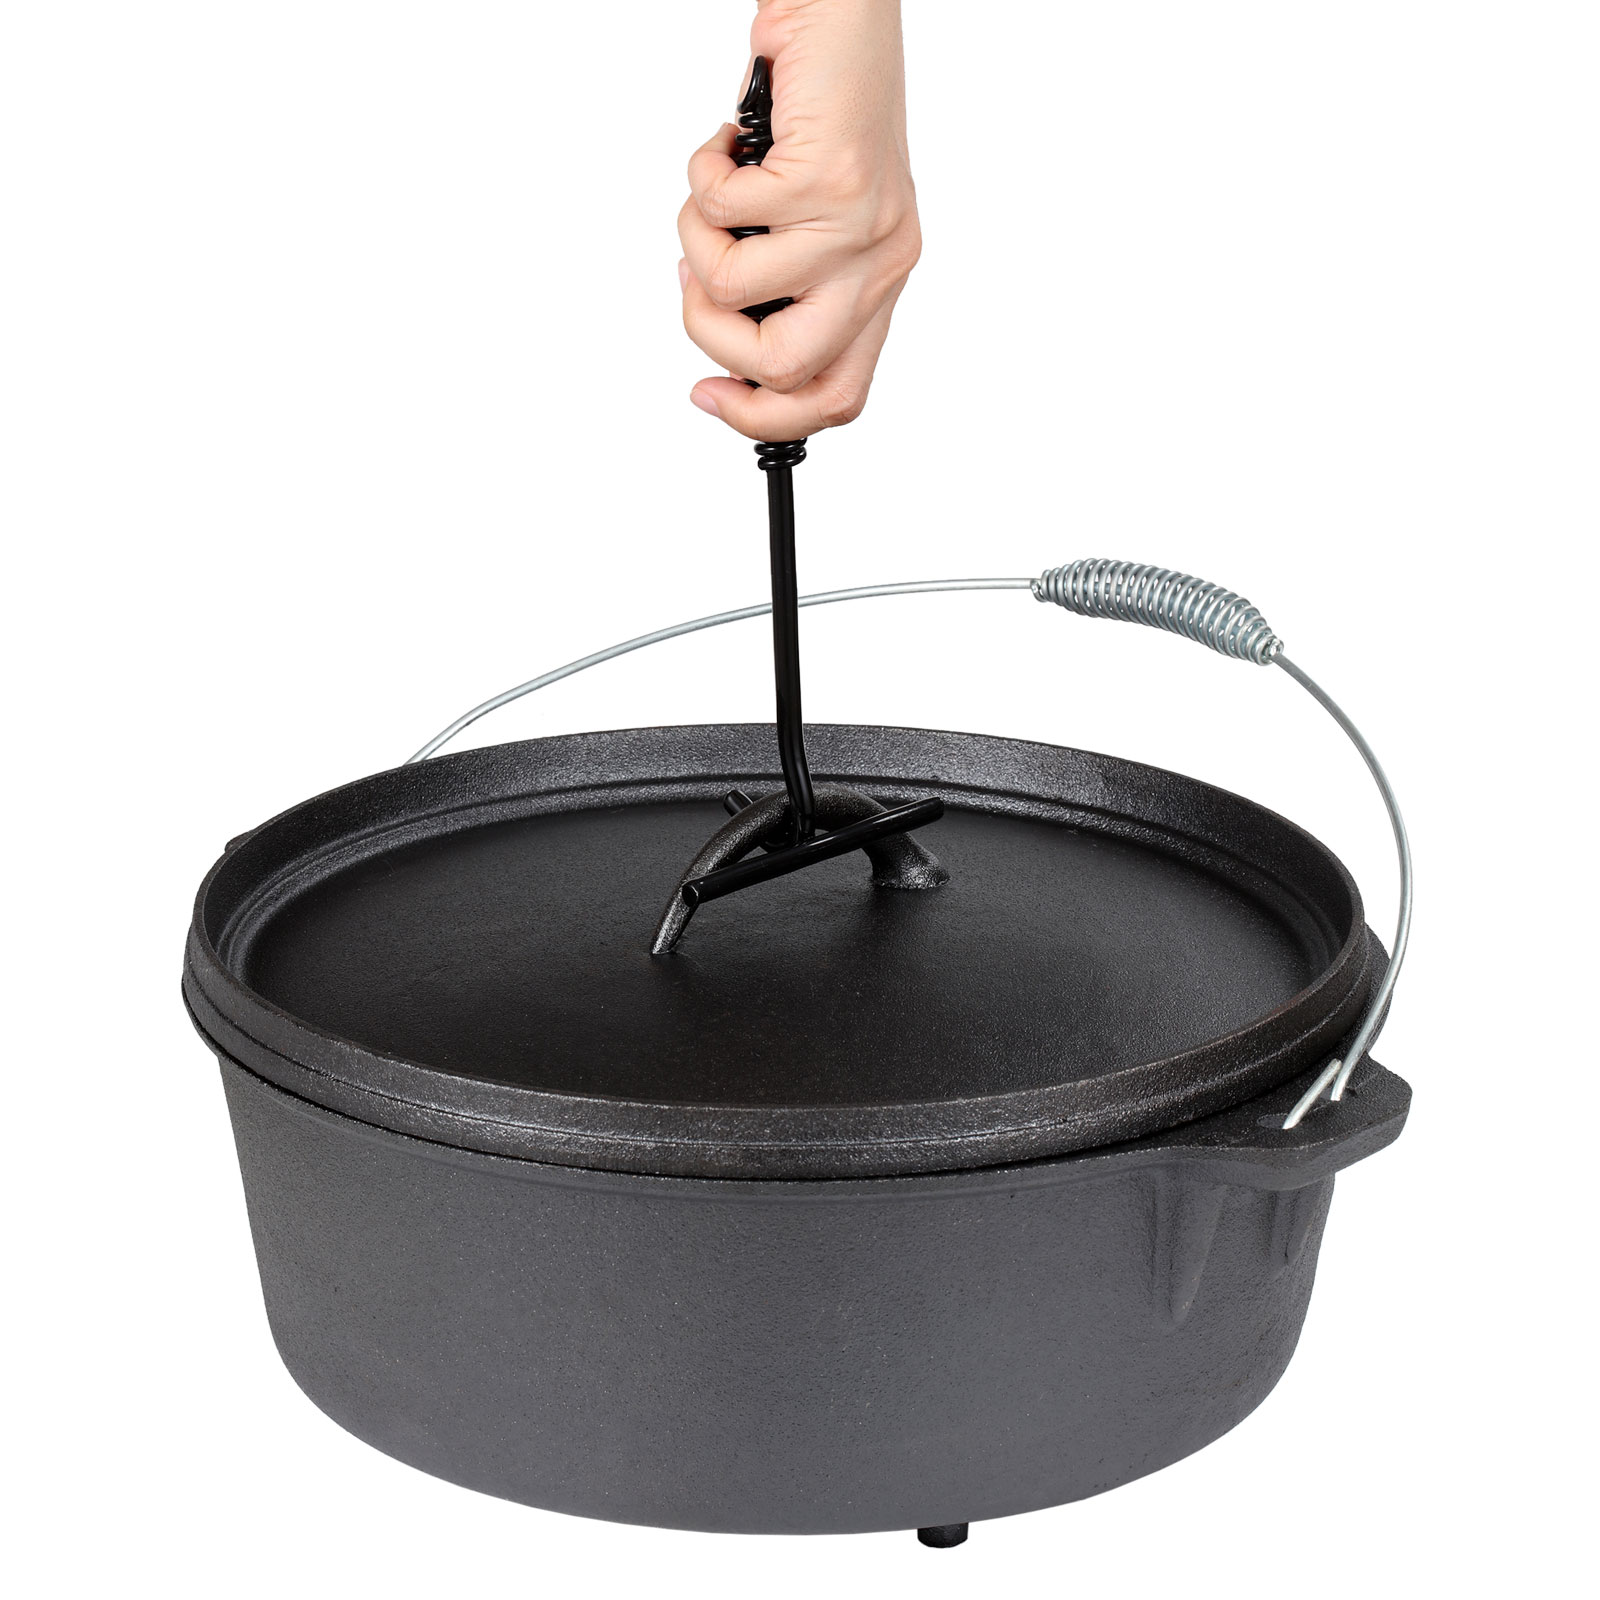 Wiltec Dutch Oven Cast Iron Kettle 1L Cooking Equipment ...